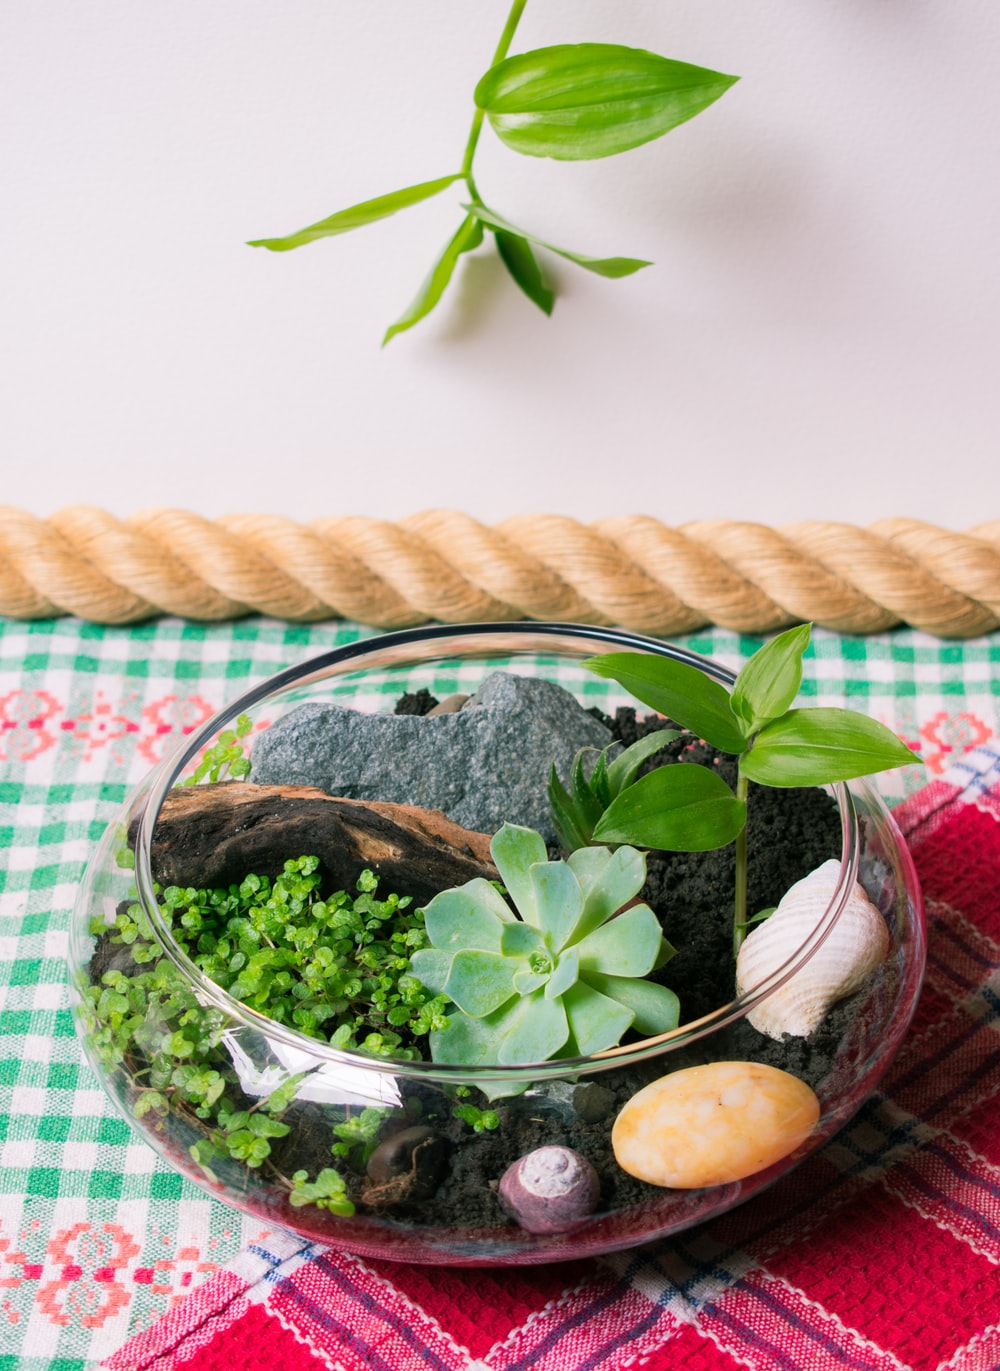 green plant in clear glass bowl